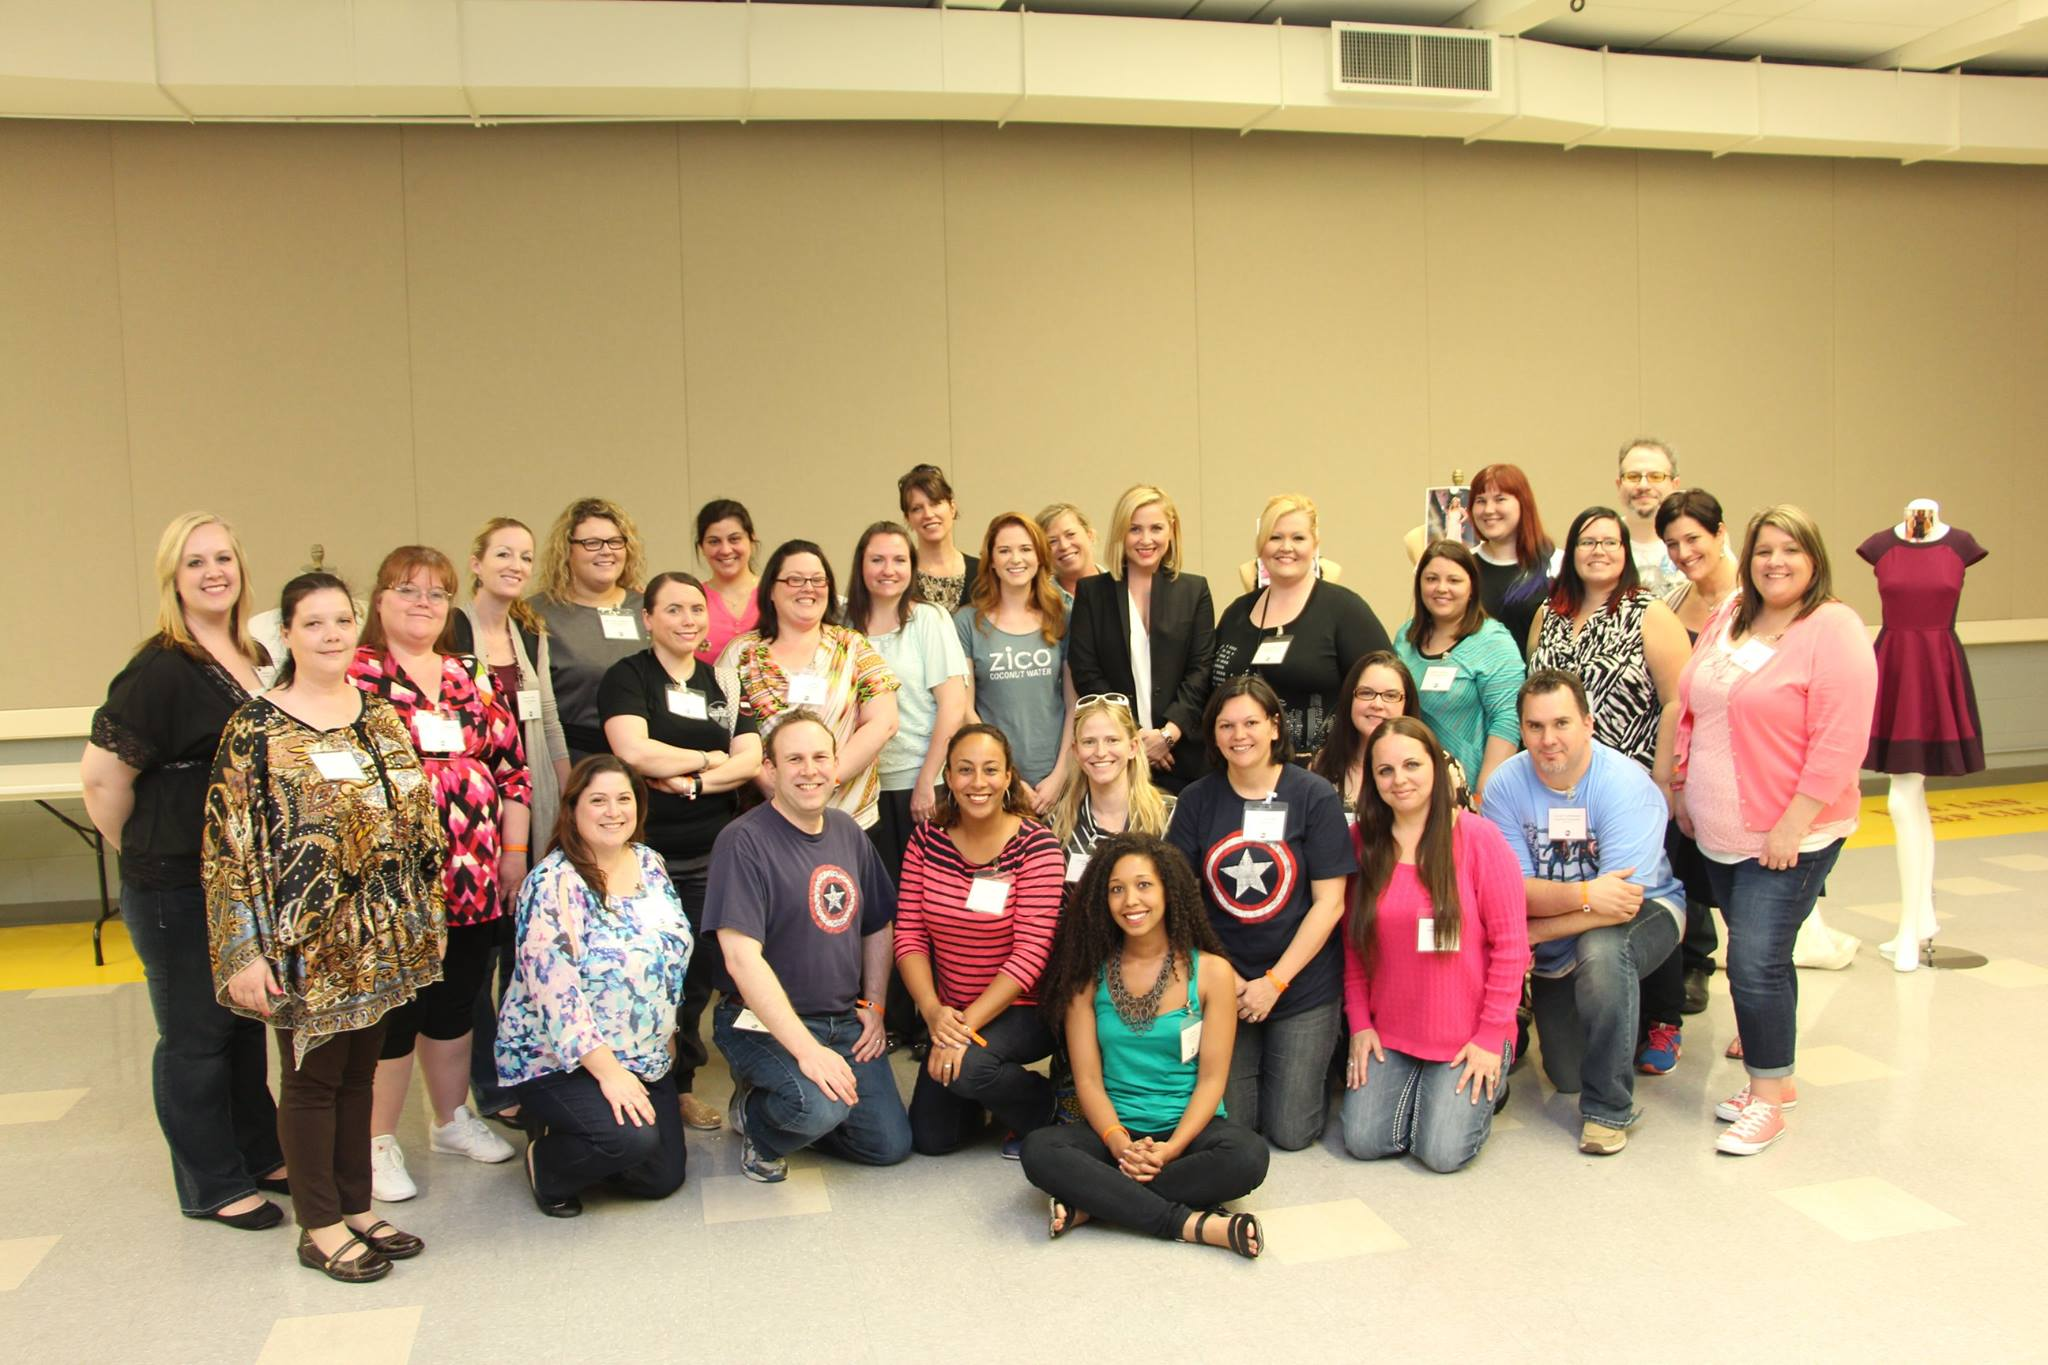 Grey's Anatomy Bloggers #ABCTVEvent